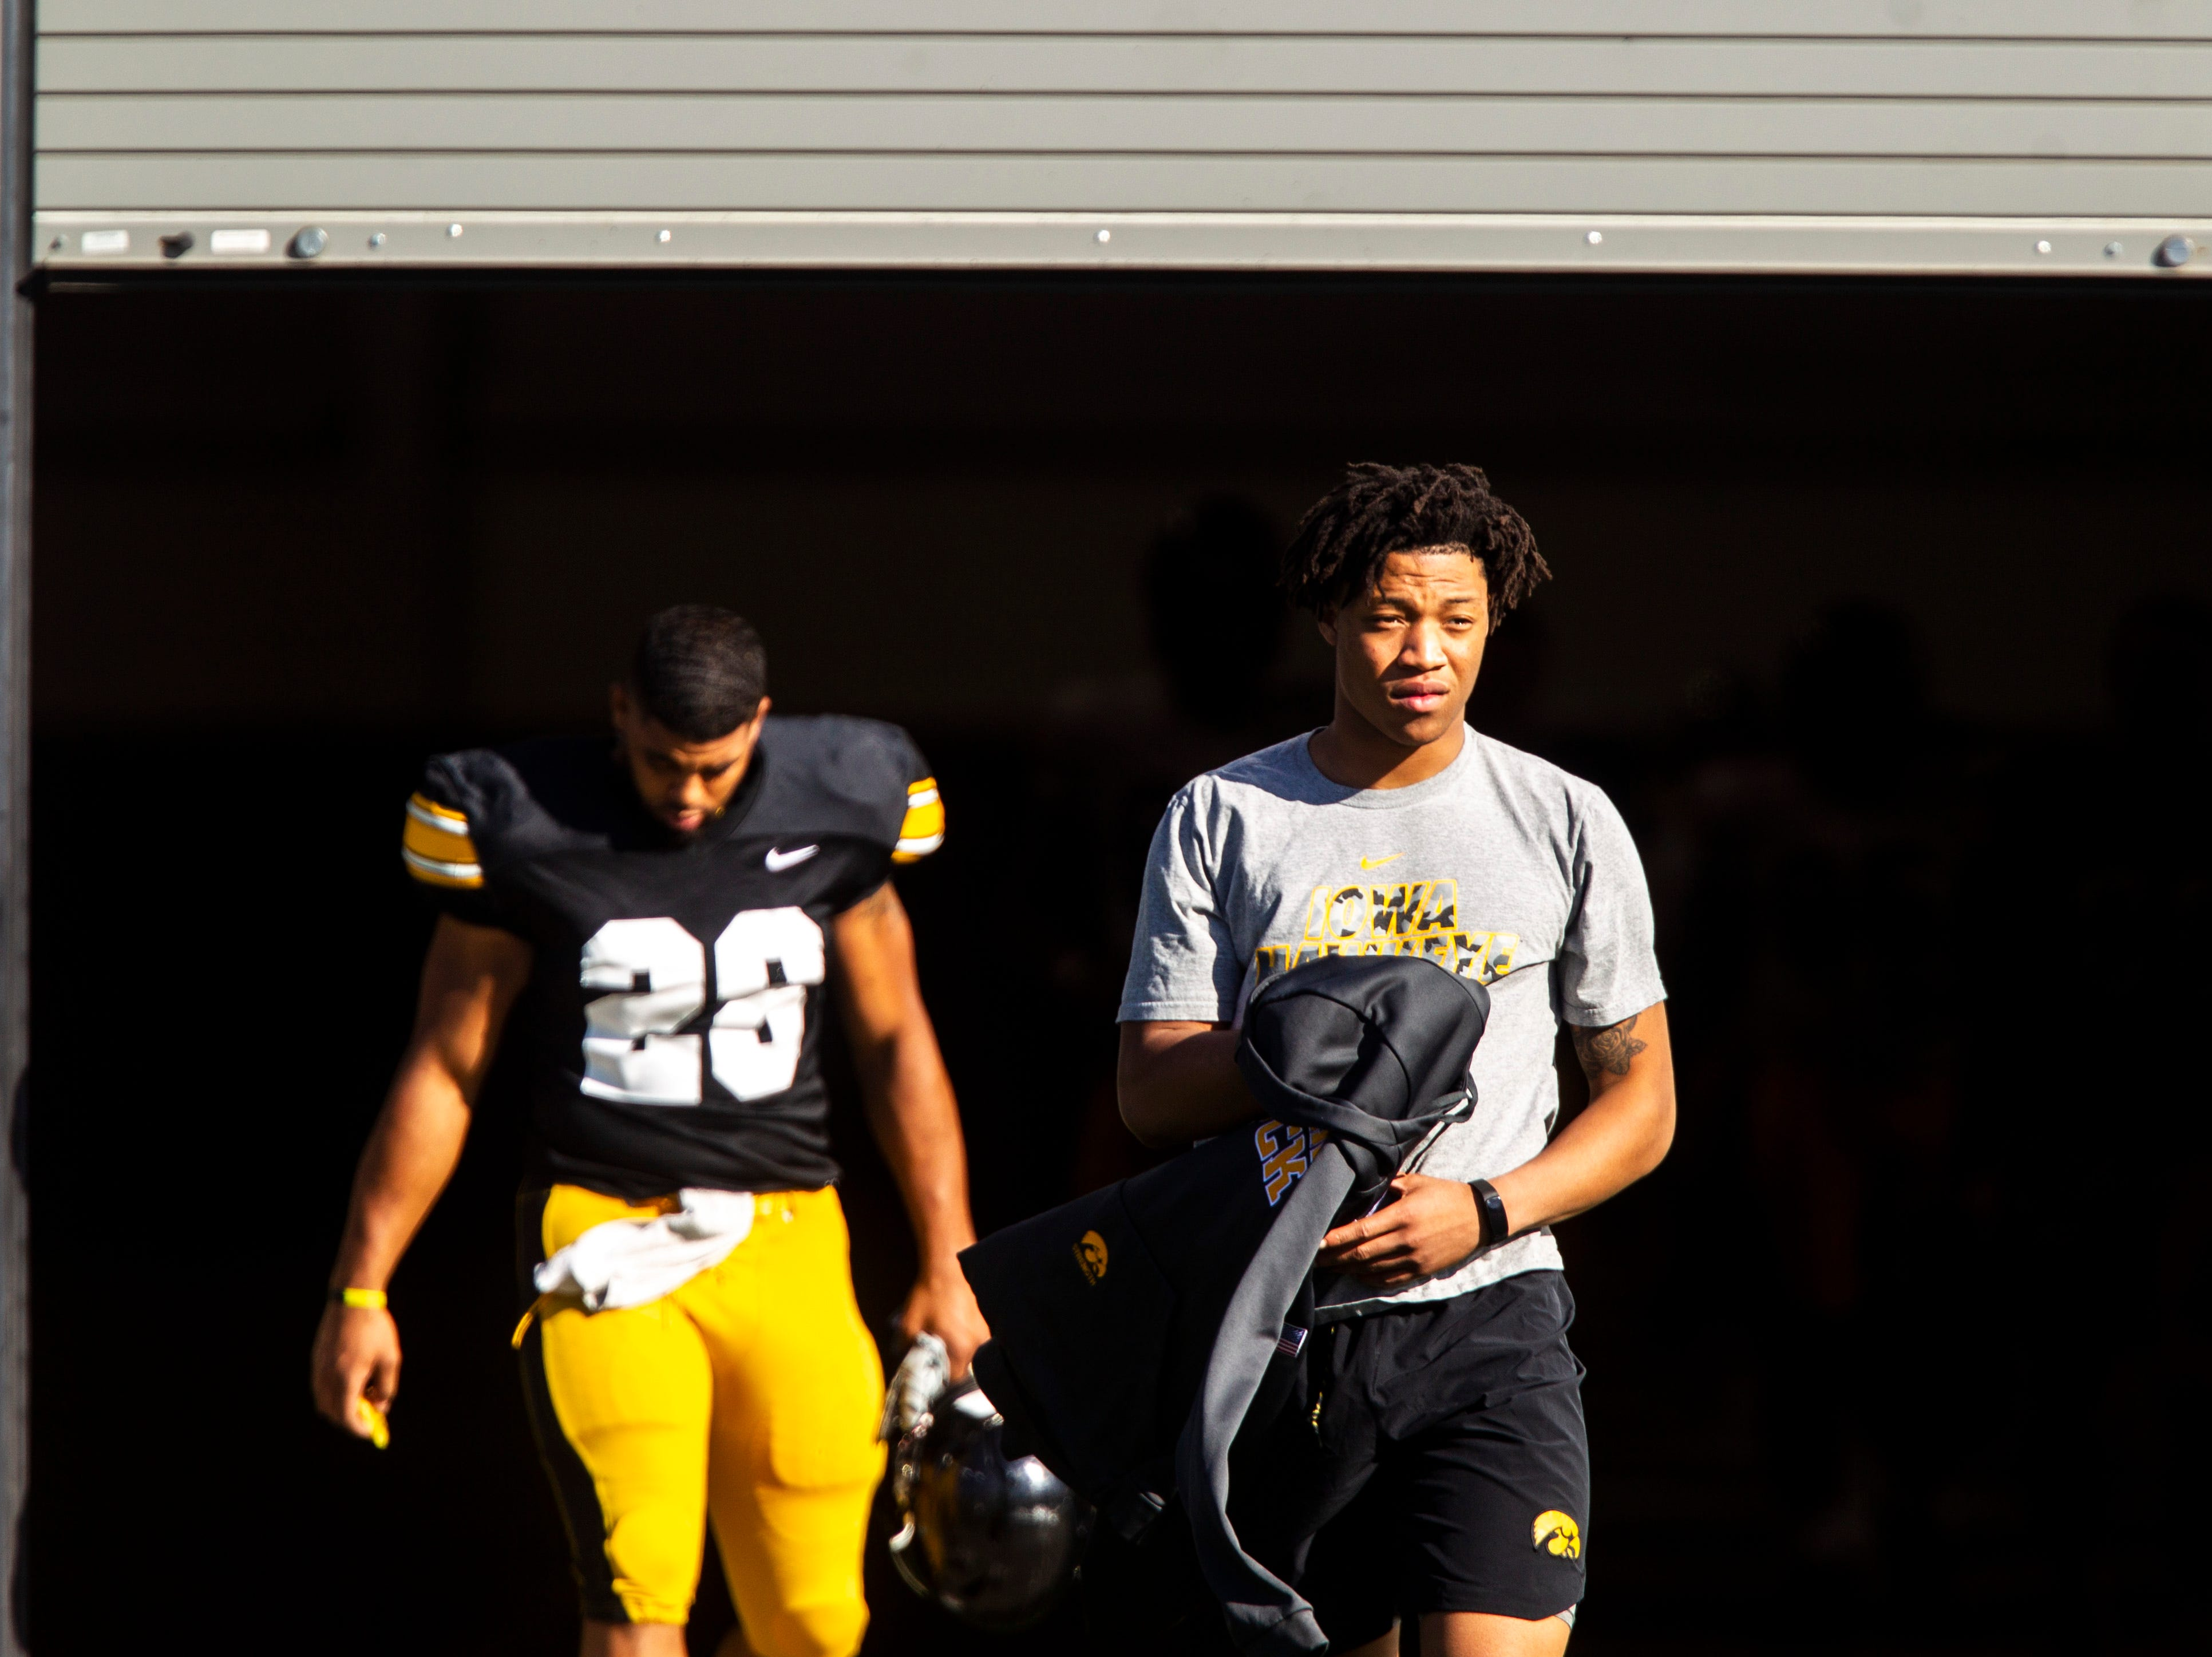 Iowa linebacker Jestin Jacobs, right, walks out to the field during the final spring football practice, Friday, April 26, 2019, at the University of Iowa outdoor practice facility in Iowa City, Iowa.